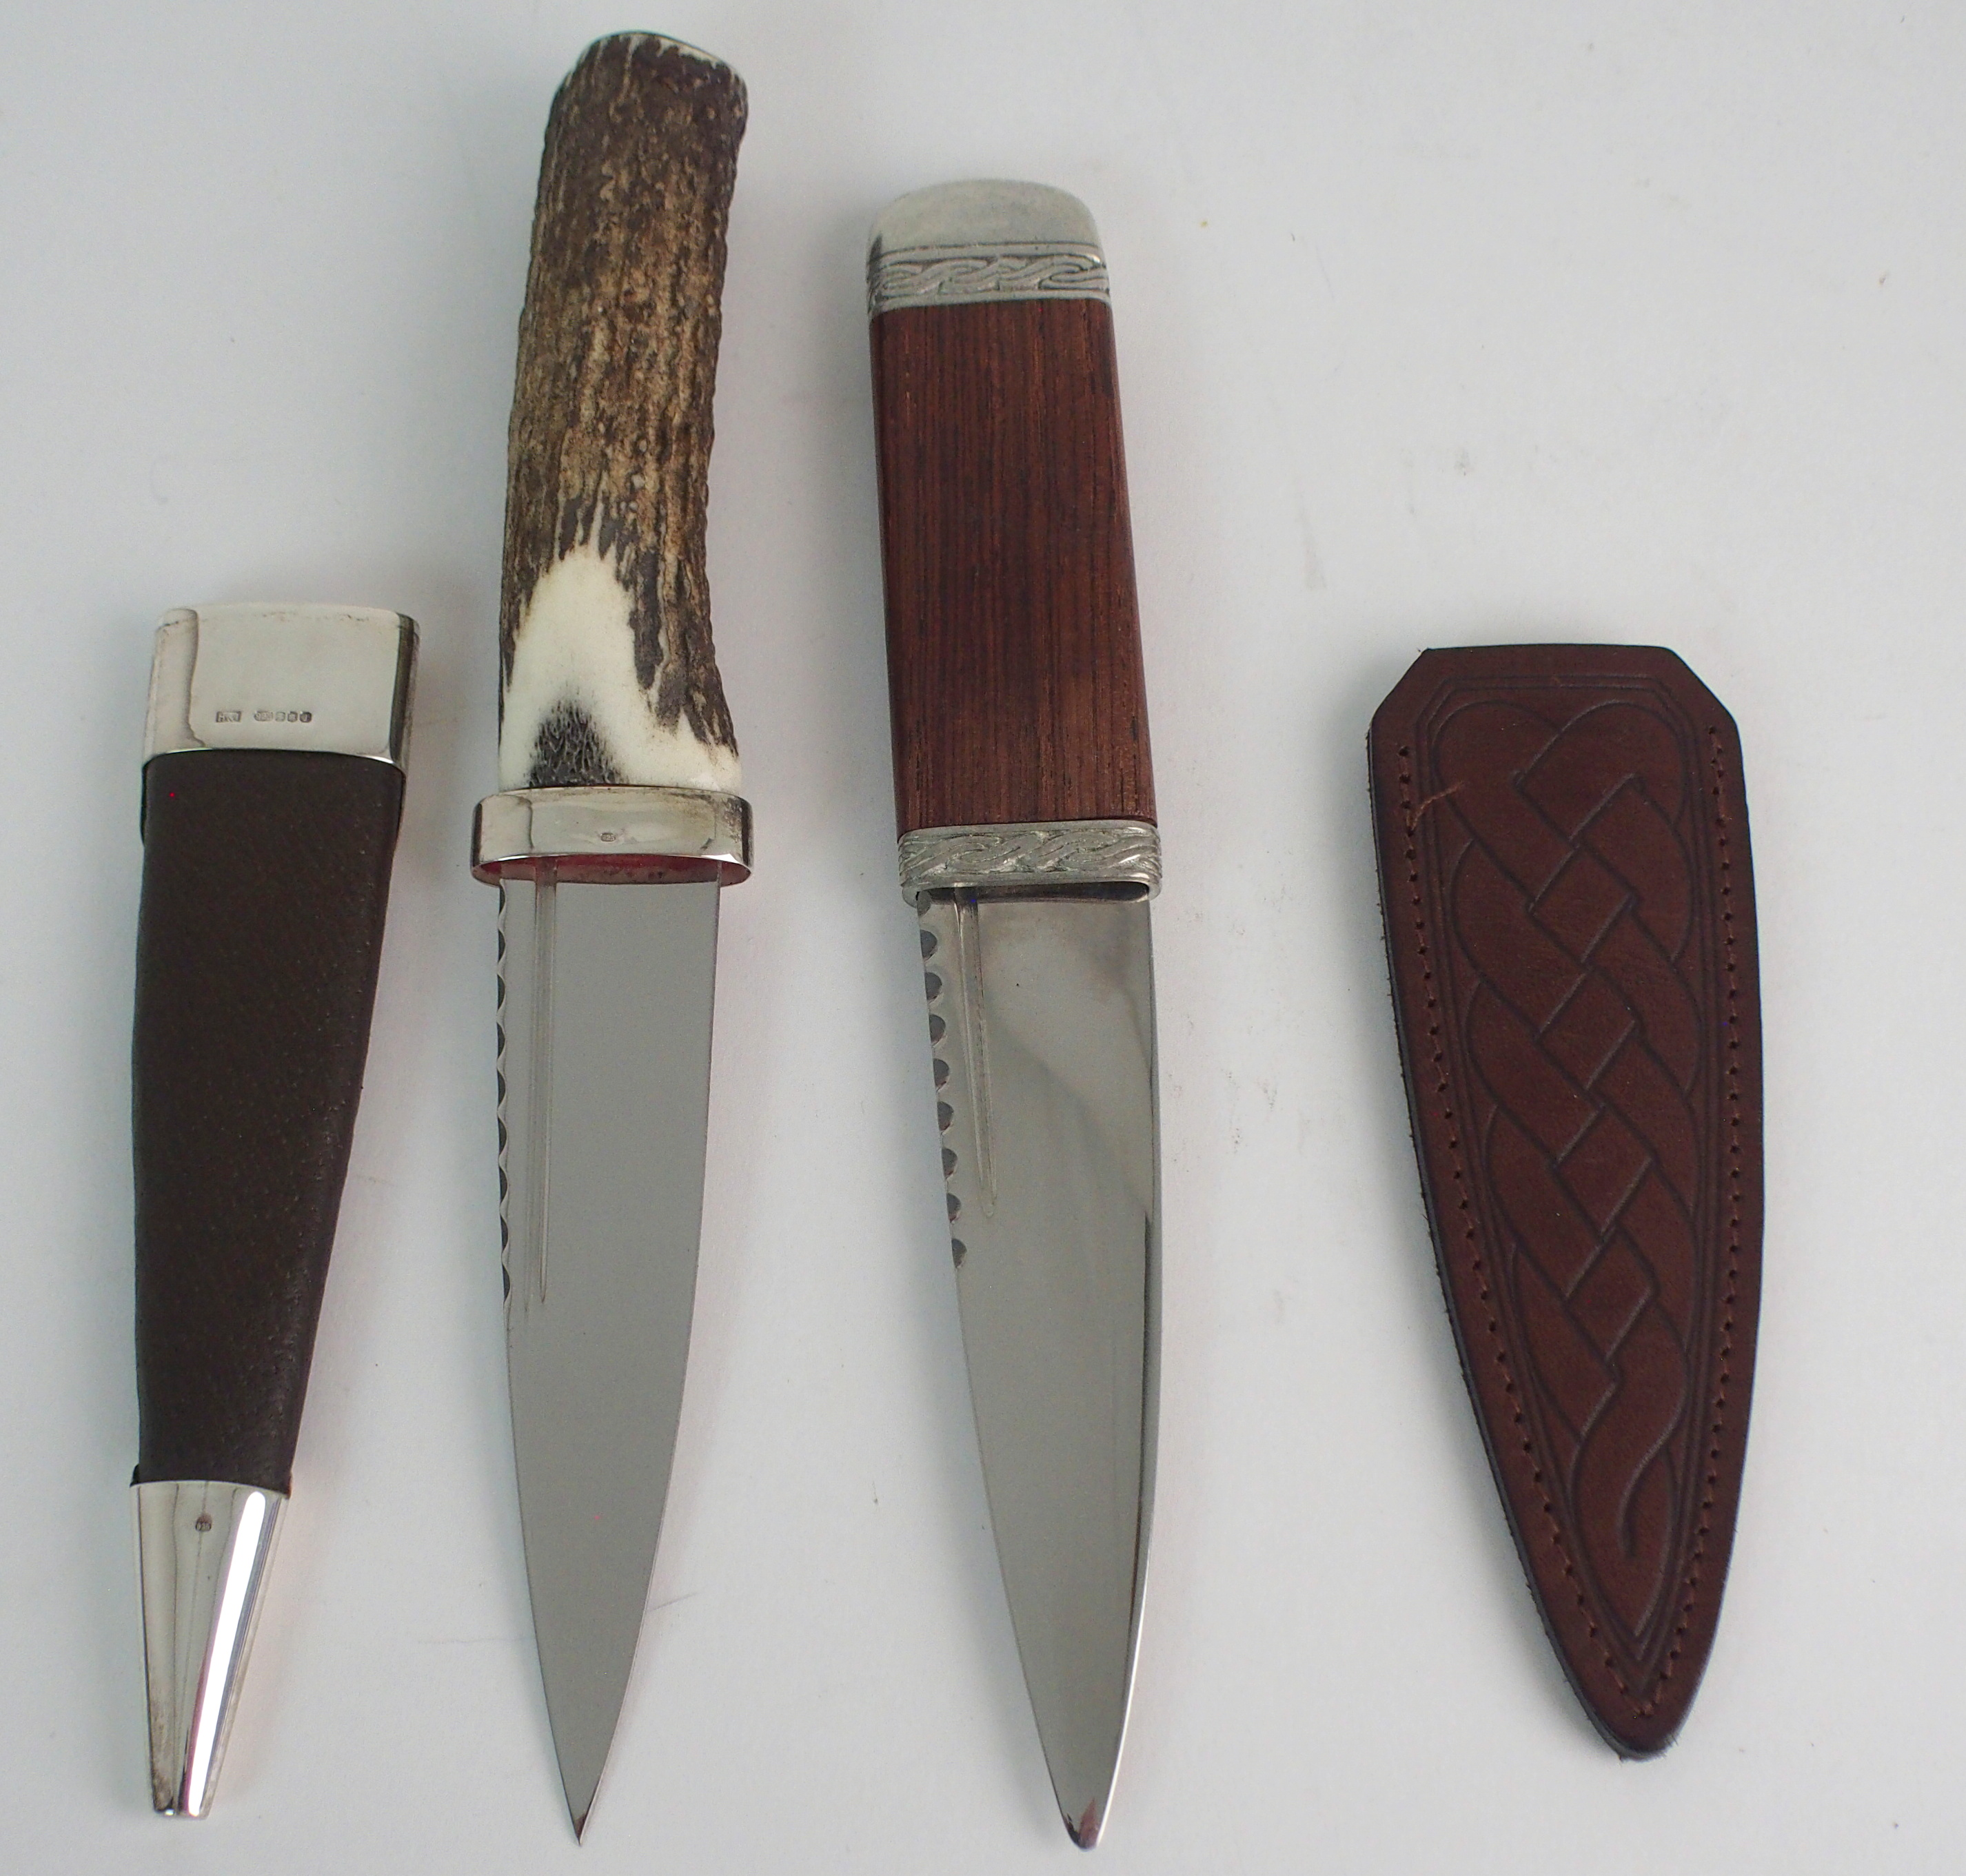 A SILVER-MOUNTED SGIAN DUBH BY HAMILTON & INCHES with brown goatskin scabbard and stag antler handle - Image 4 of 4